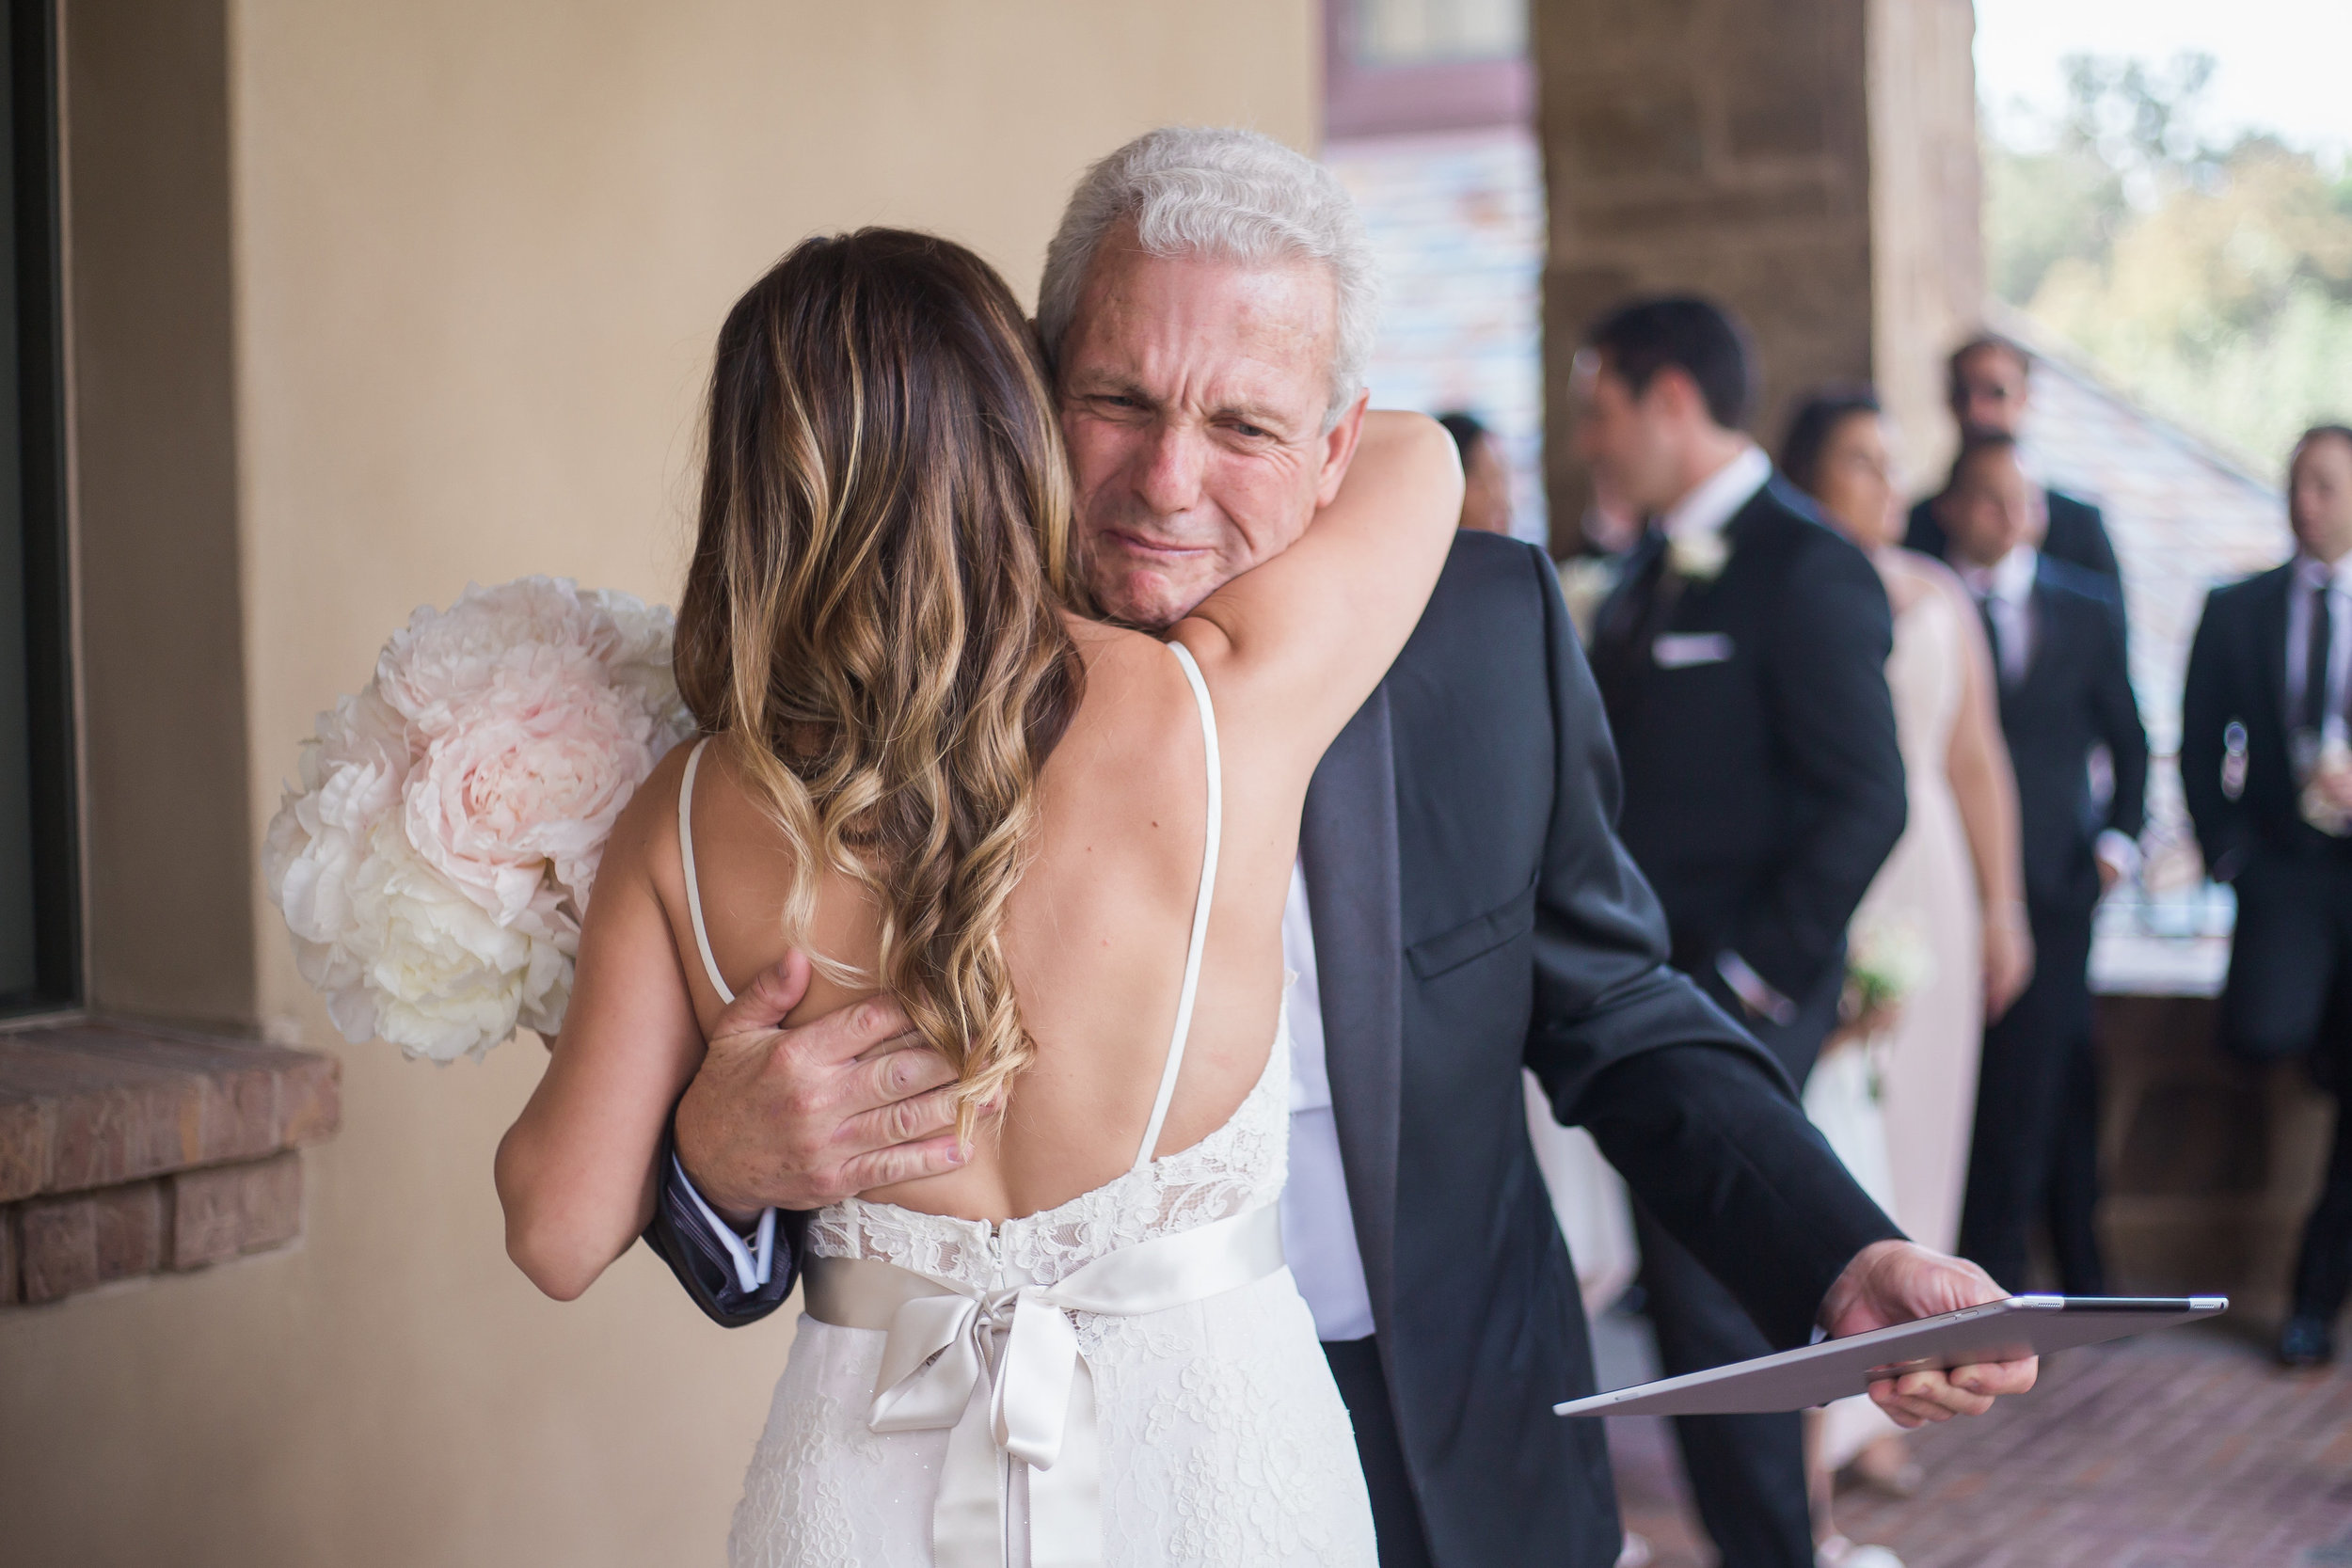 This shot is when the bride's new father-in-law walked around the corner to see her for the first time in her dress. It was so sweet how excited he was to have a new daughter in the family. You can tell how much he loves the woman his son has chosen.